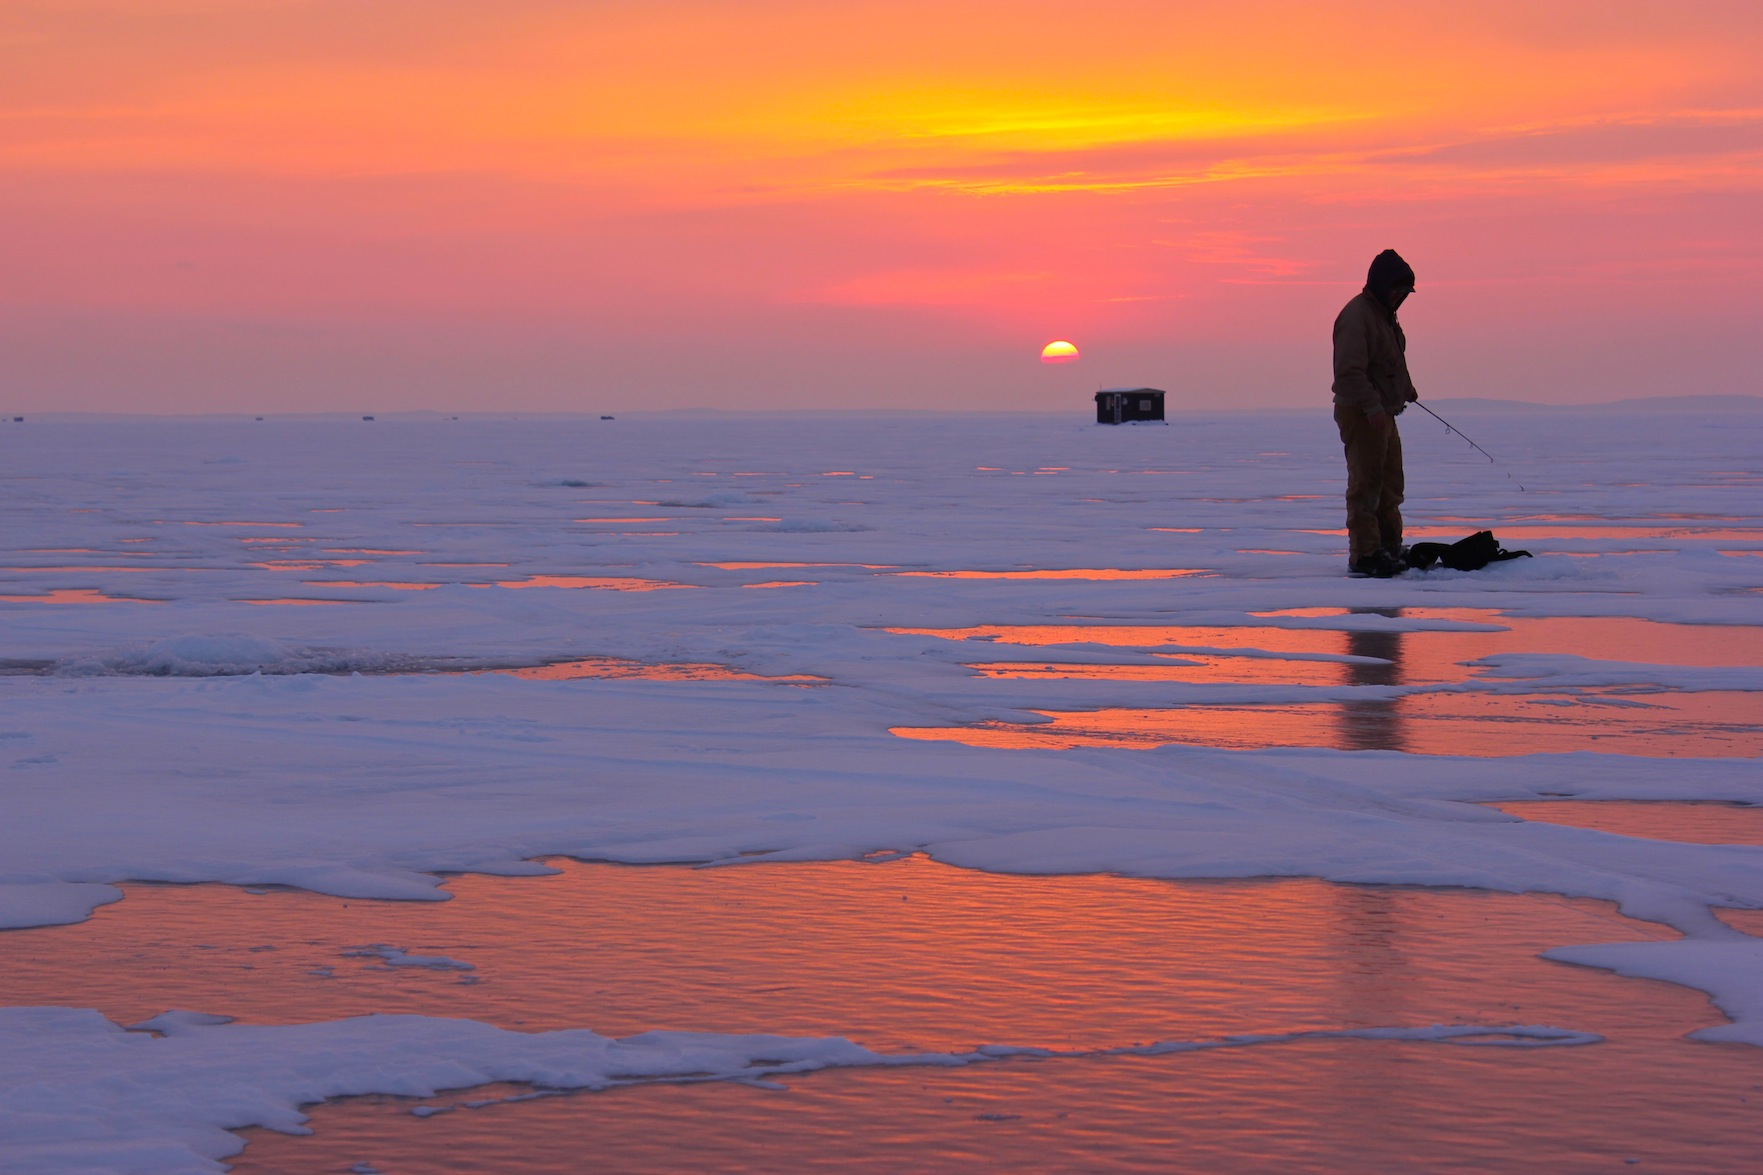 What did I just say about sunrises and sunsets on Mille Lacs? This, alone, makes a day on the ice